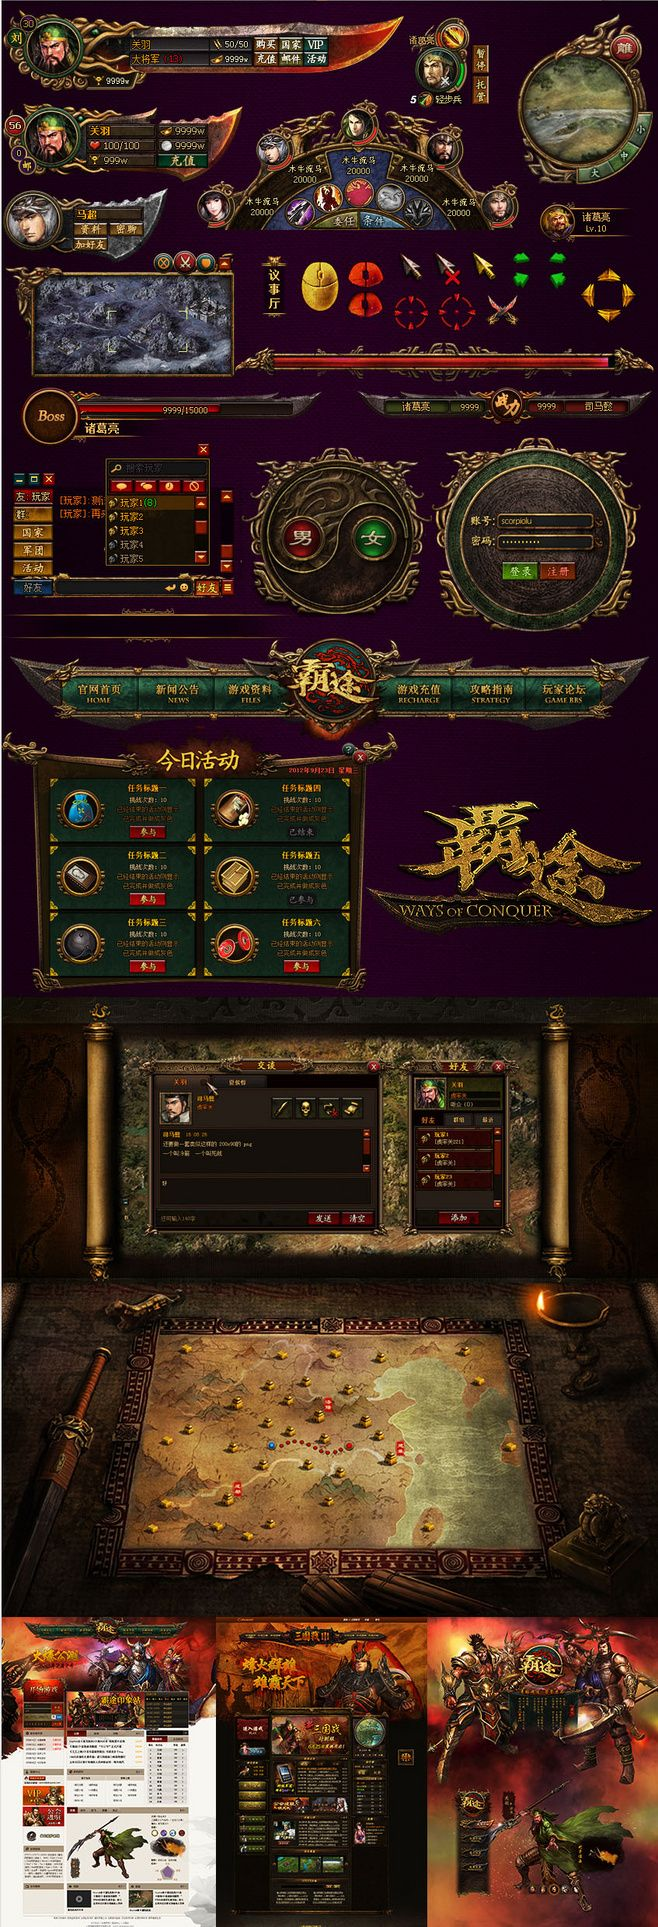 Game user interface gui ui | NOT OUR ART - Please click artwork for source | WRITING INSPIRATION for Dungeons and Dragons DND Pathfinder PFRPG Warhammer 40k Star Wars Shadowrun Call of Cthulhu and other d20 roleplaying fantasy science fiction scifi horror location equipment monster character game design | Create your own RPG Books w/ www.rpgbard.com